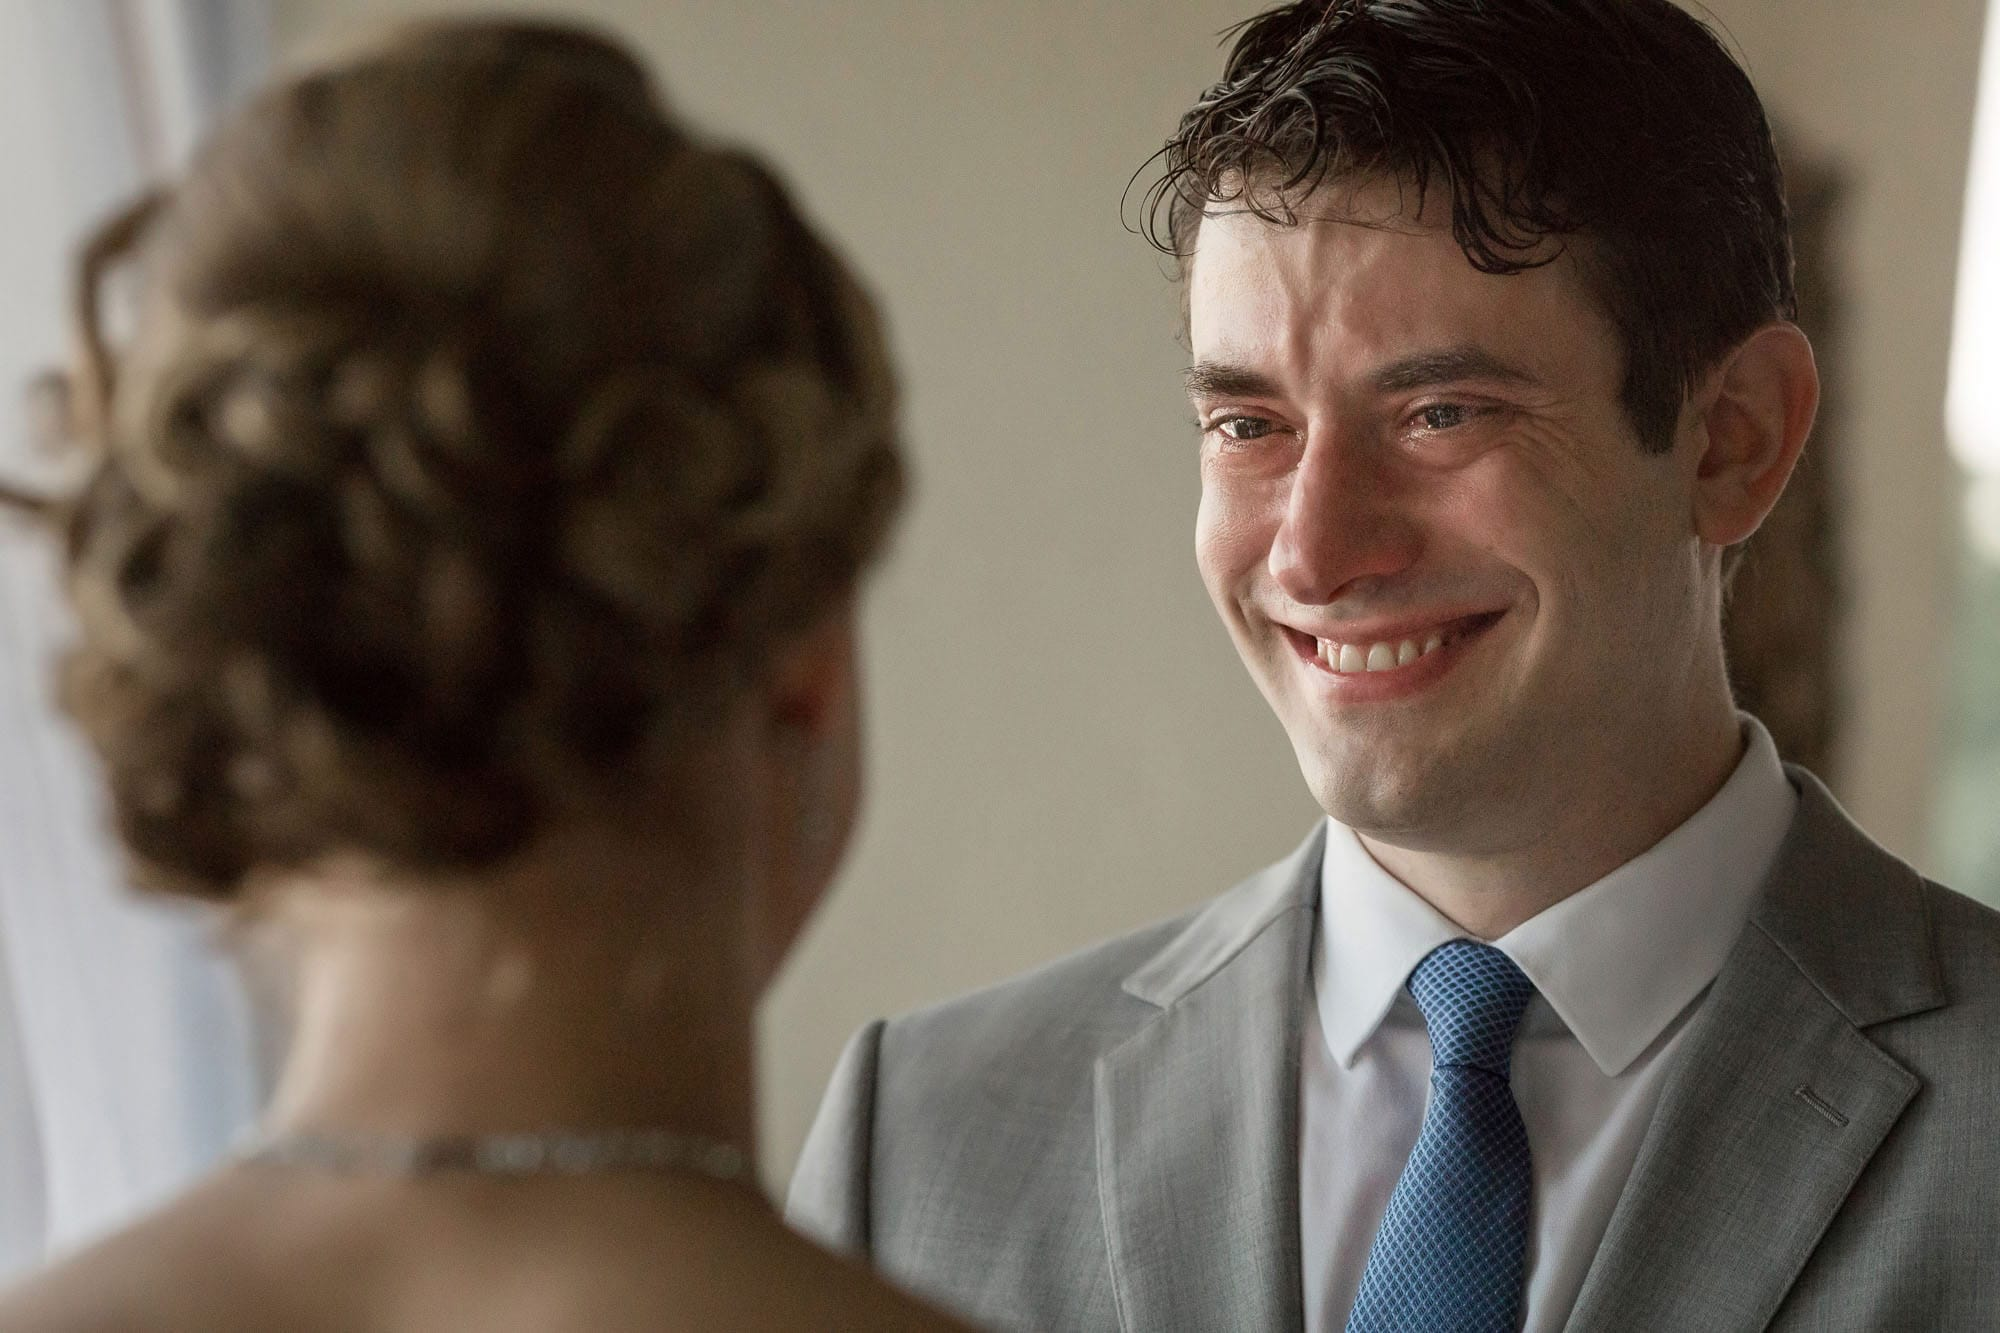 The groom smiles with tears in his eyes at his lovely bride.